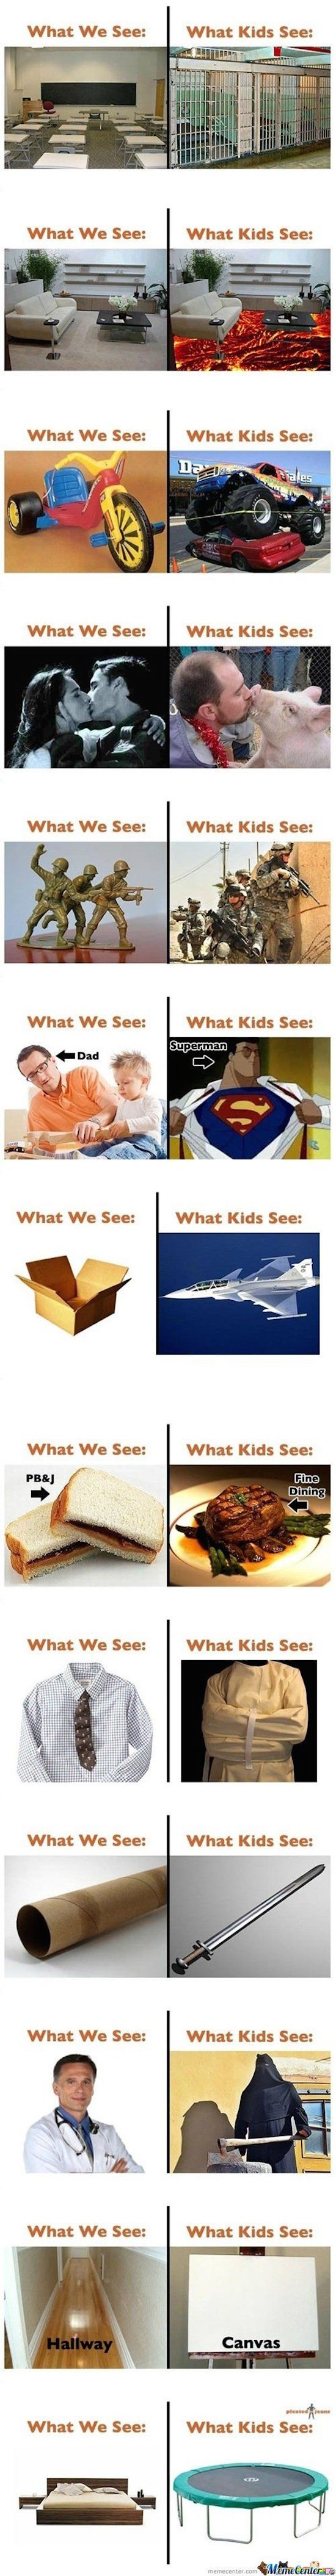 pics of what kids see vs what we see